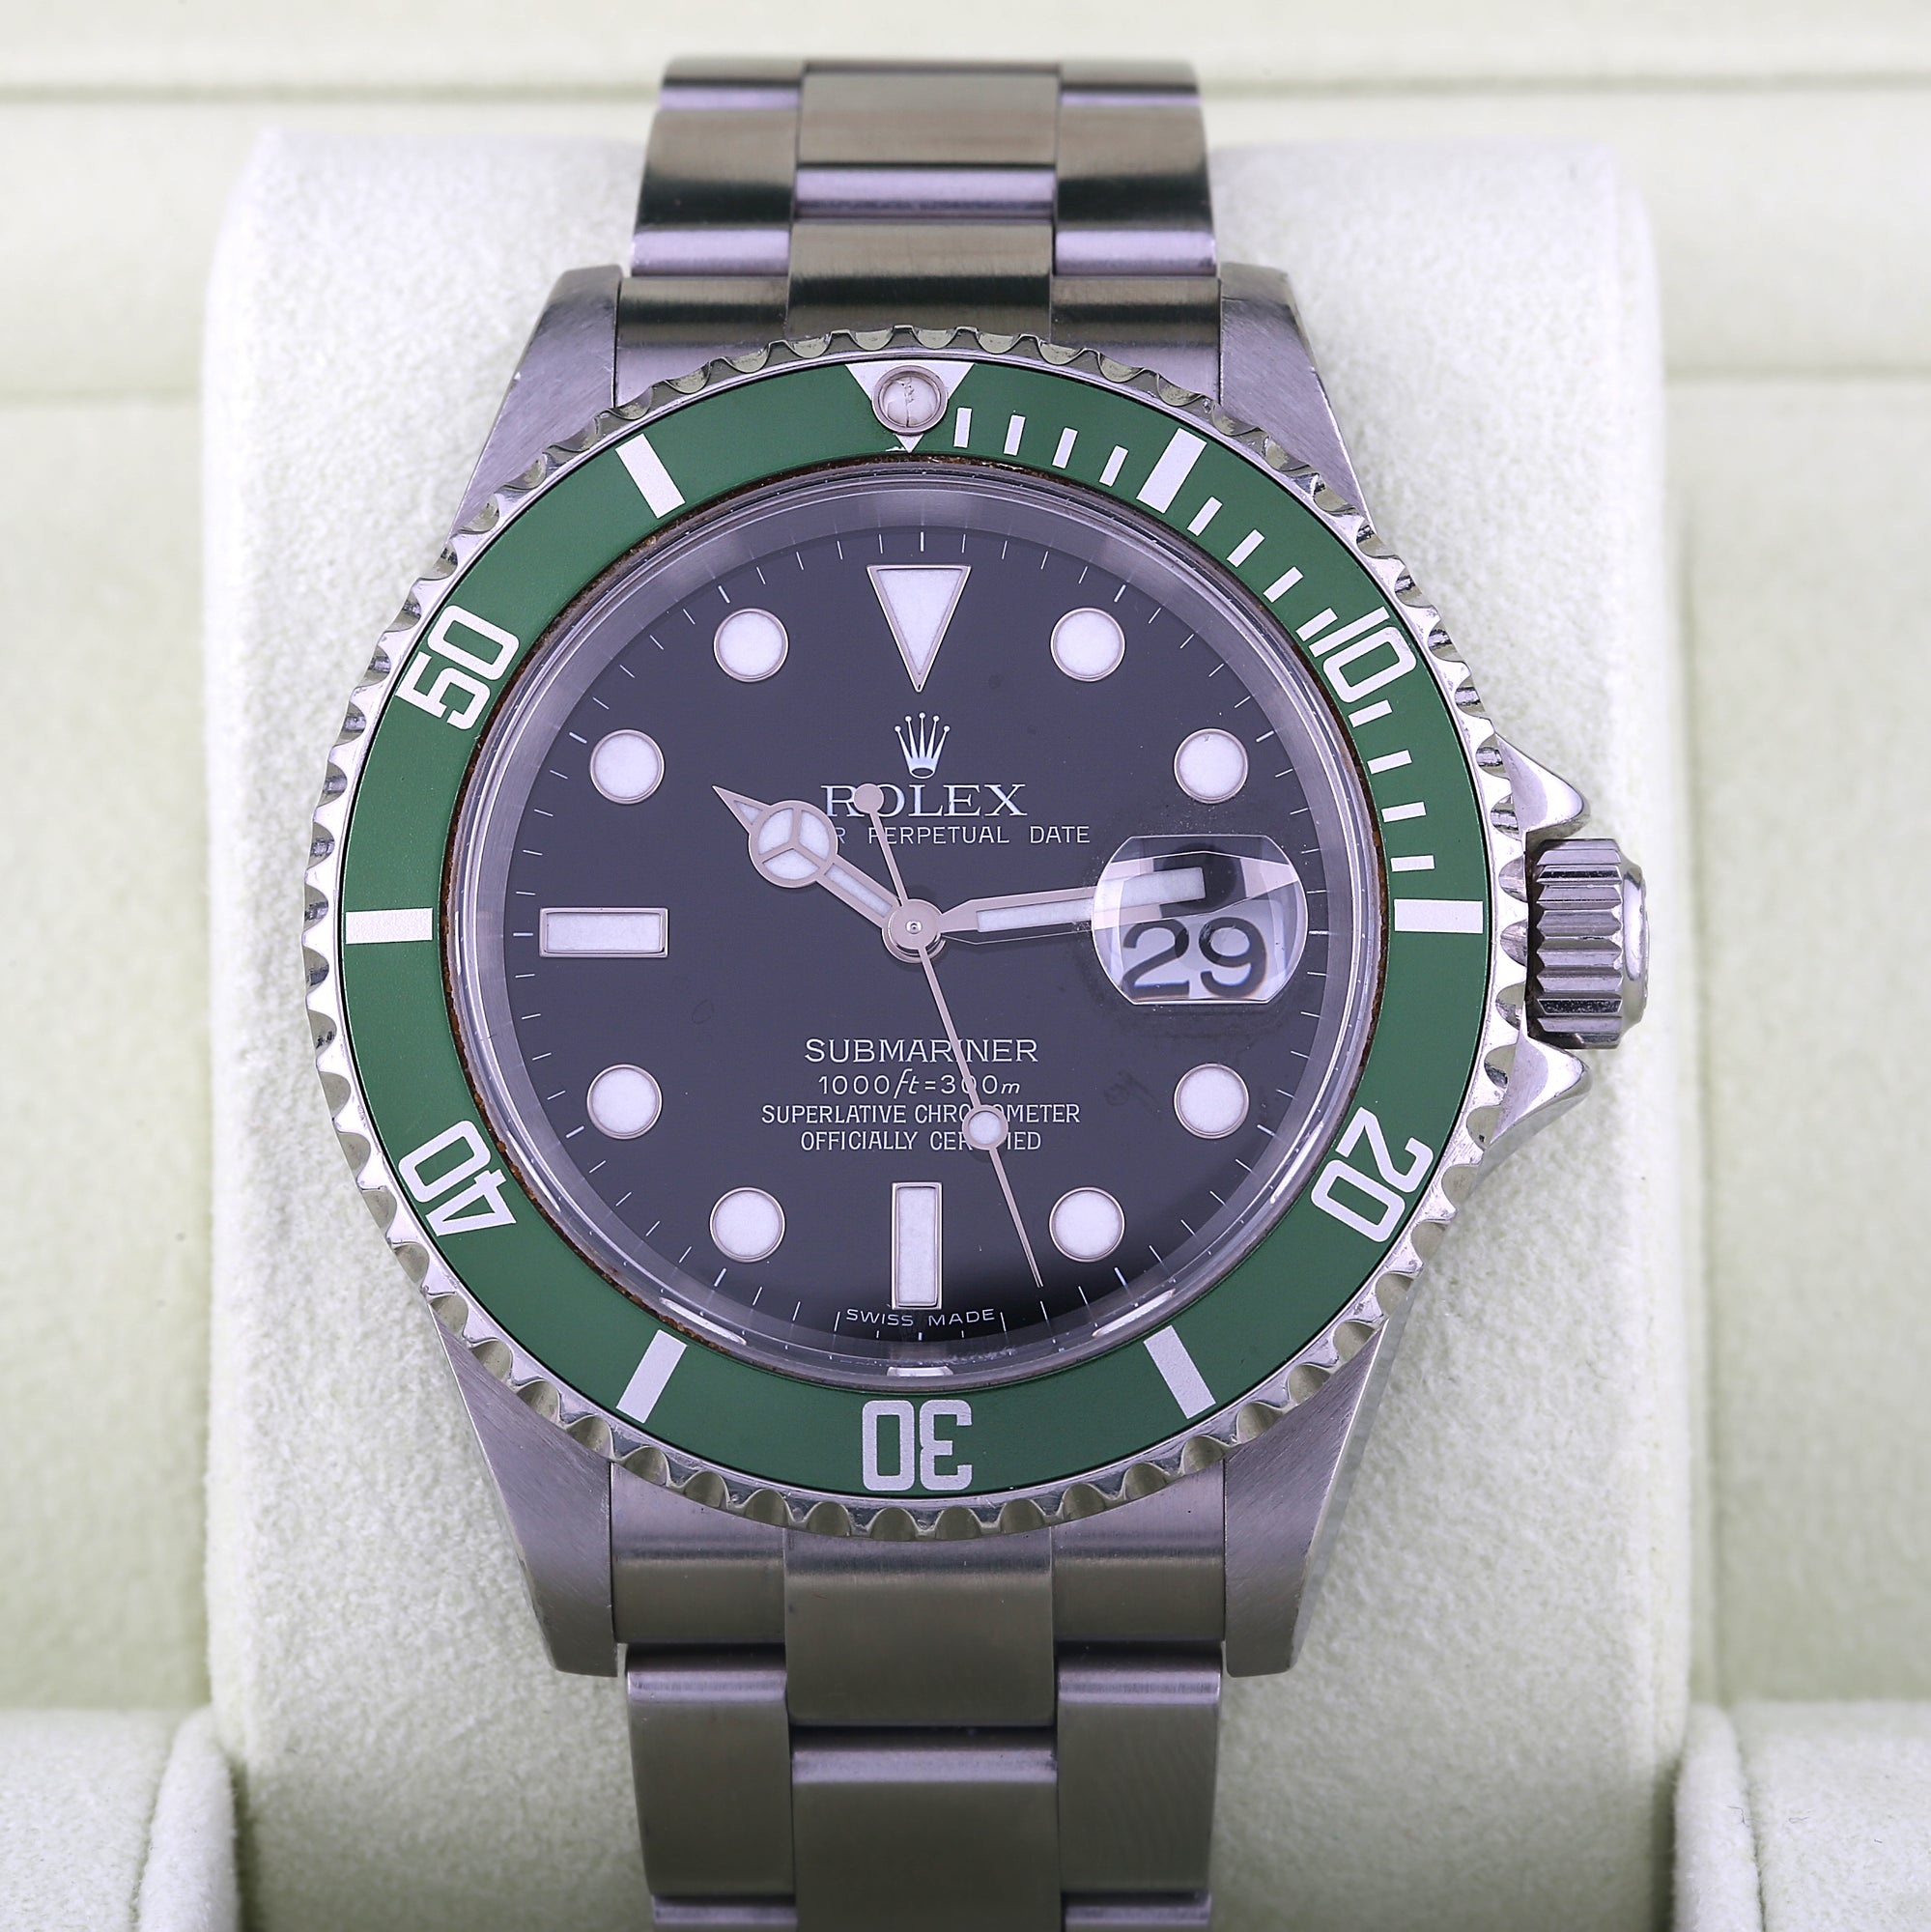 watches submariner sons non davison rolex platinum sub steel jewellers side date g